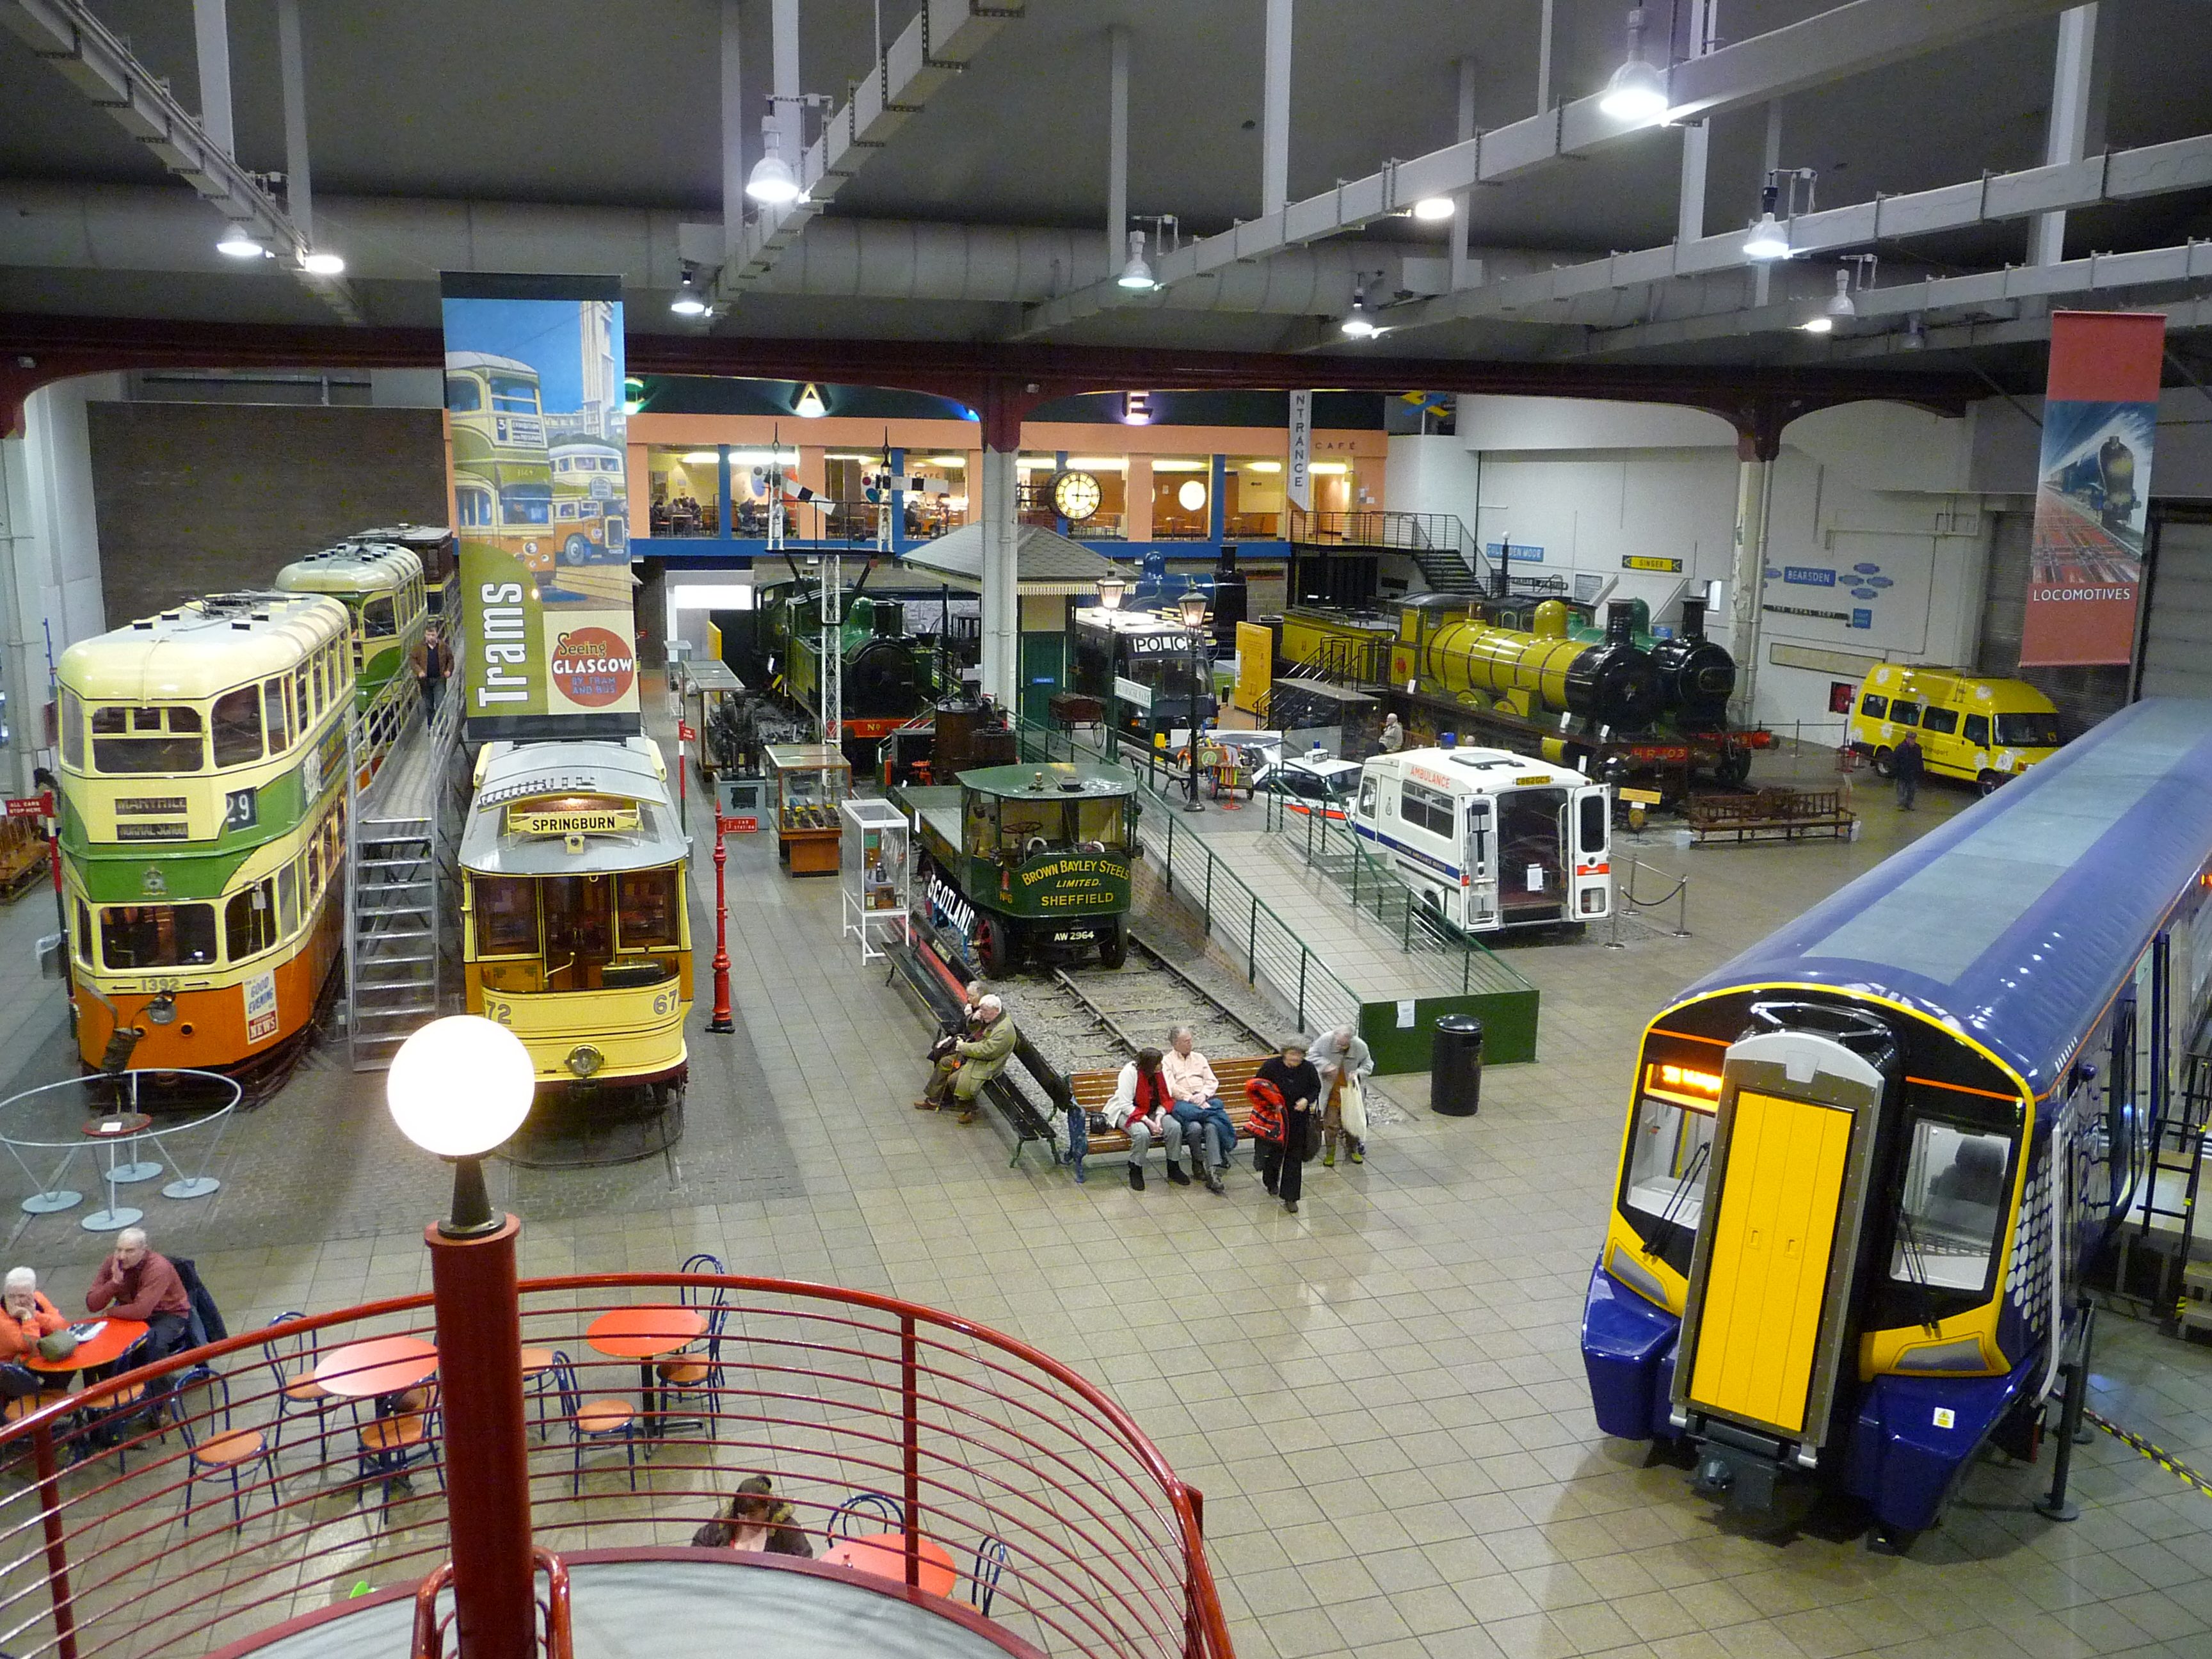 File:View of Museum Collections Glasgow Transport Museum.jpg ...